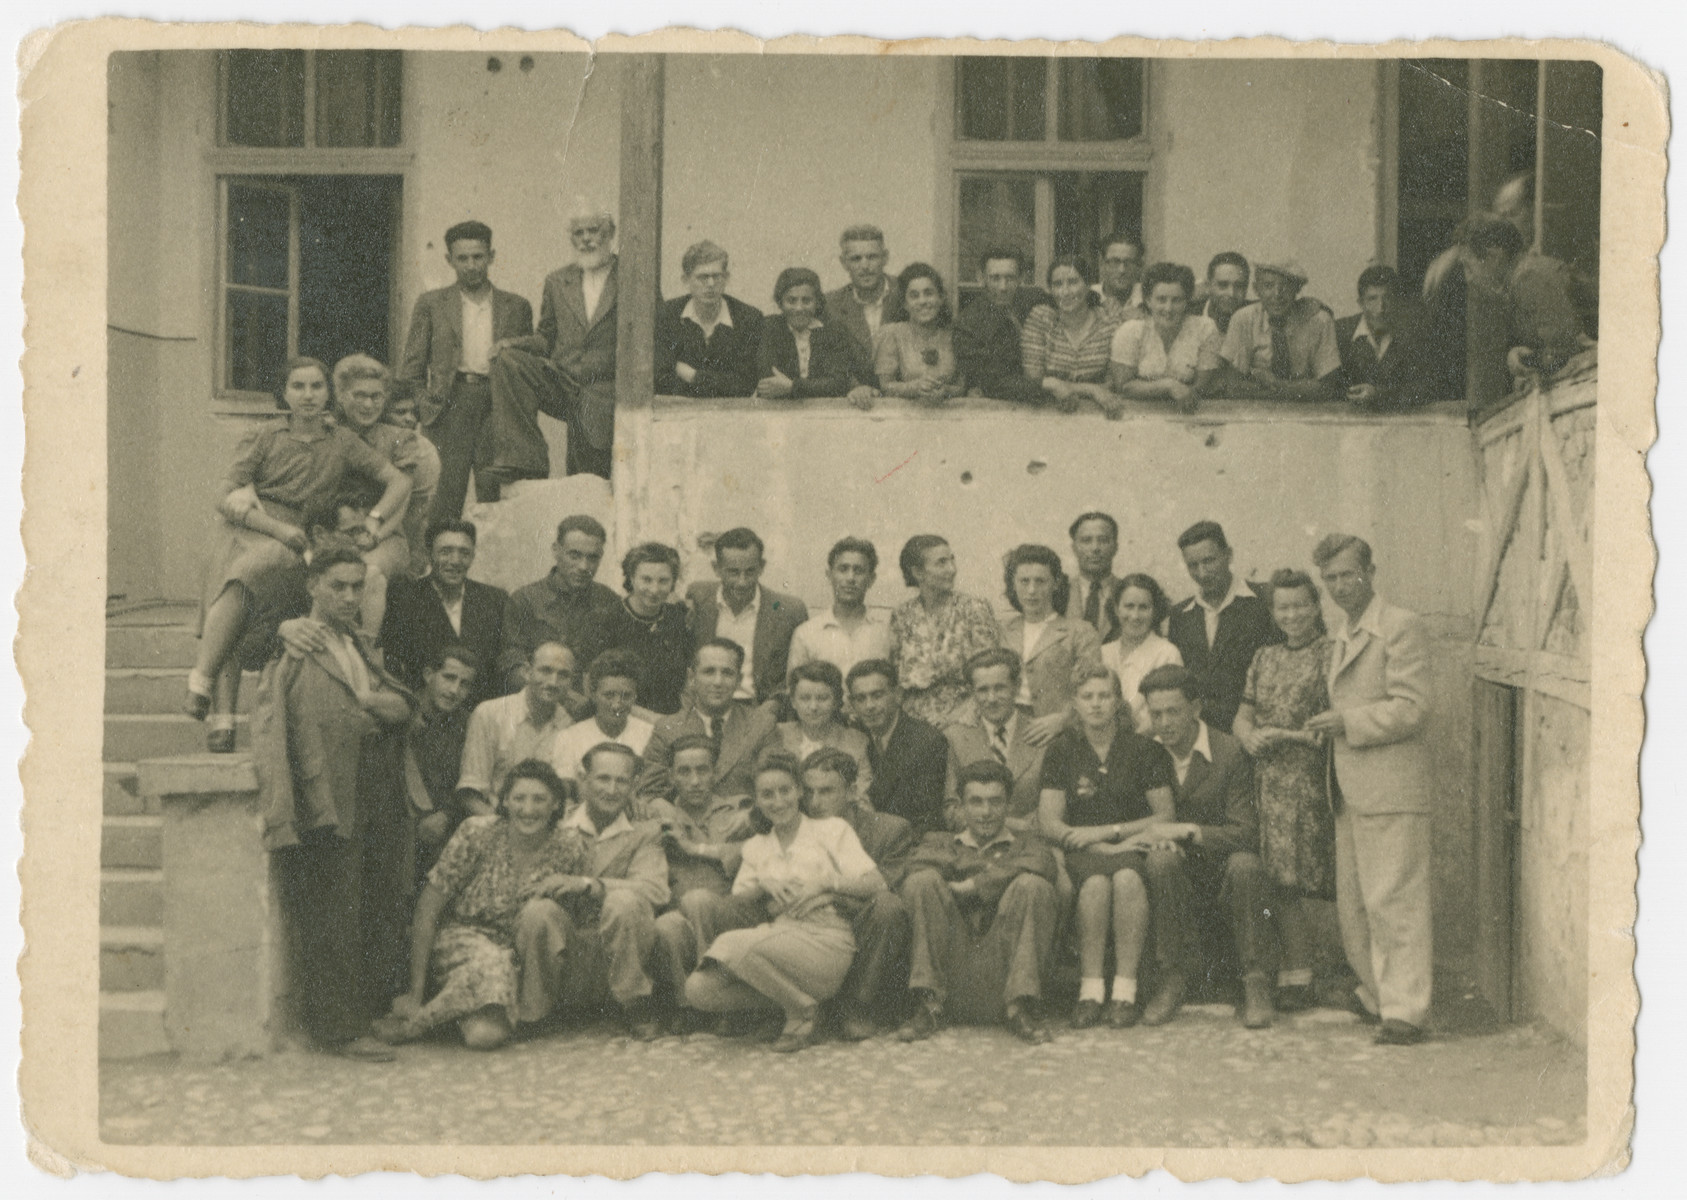 A group of Jewish displaced persons gathers in Italy prior to their immigration to Palestine.  Yehuda Bielski is pictured seated in the second row, third from the right.  Lola Bielski is standing behind him.